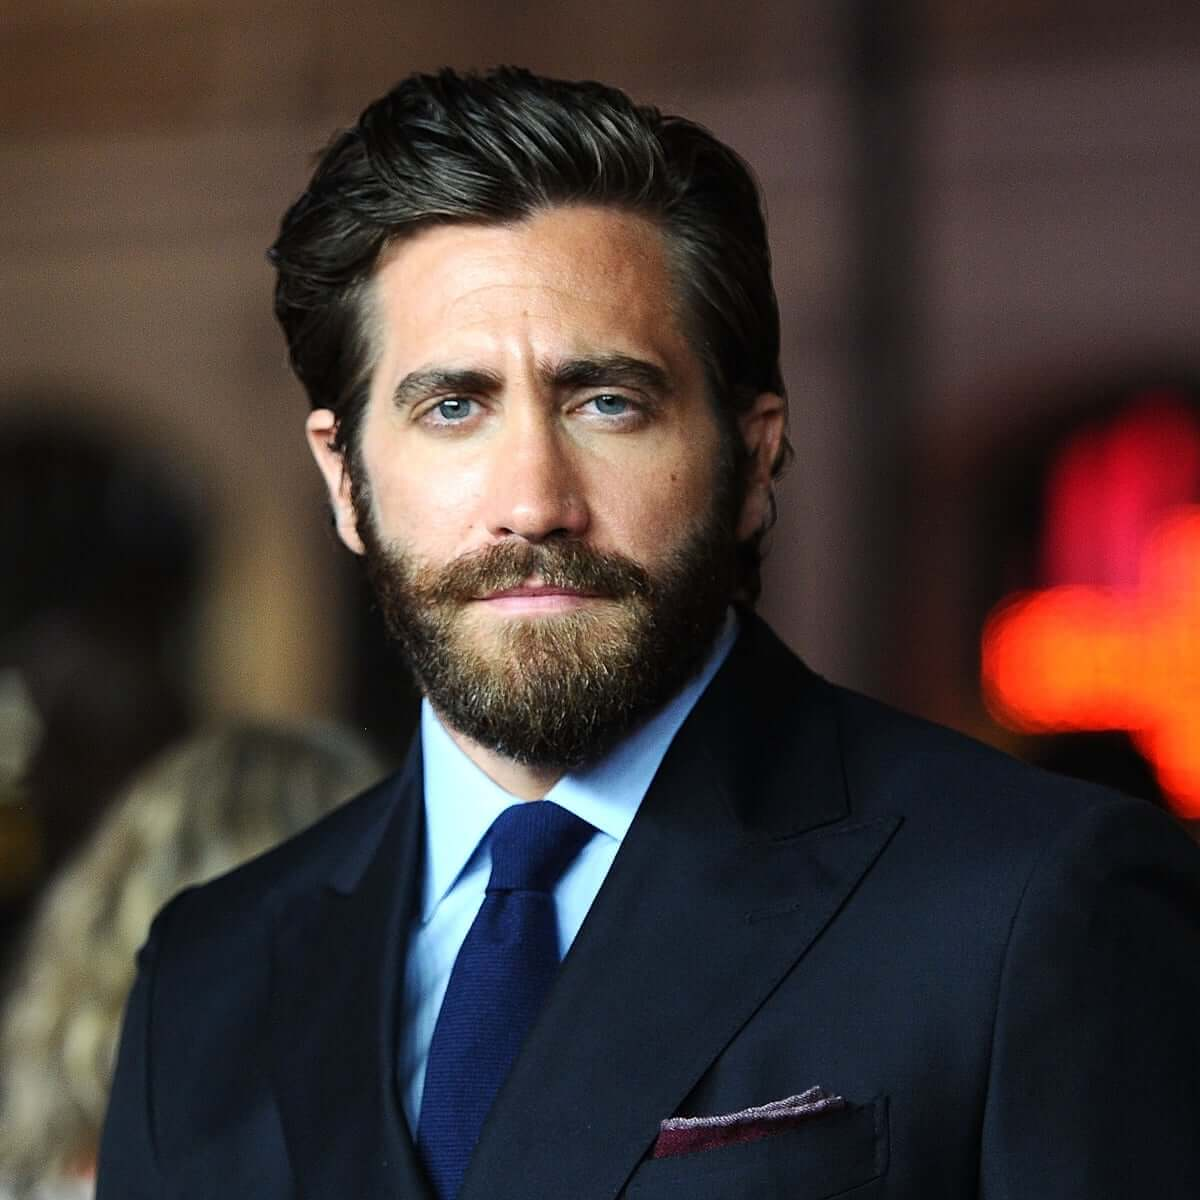 Jake Gyllenhaal is set to star in SNOW BLIND